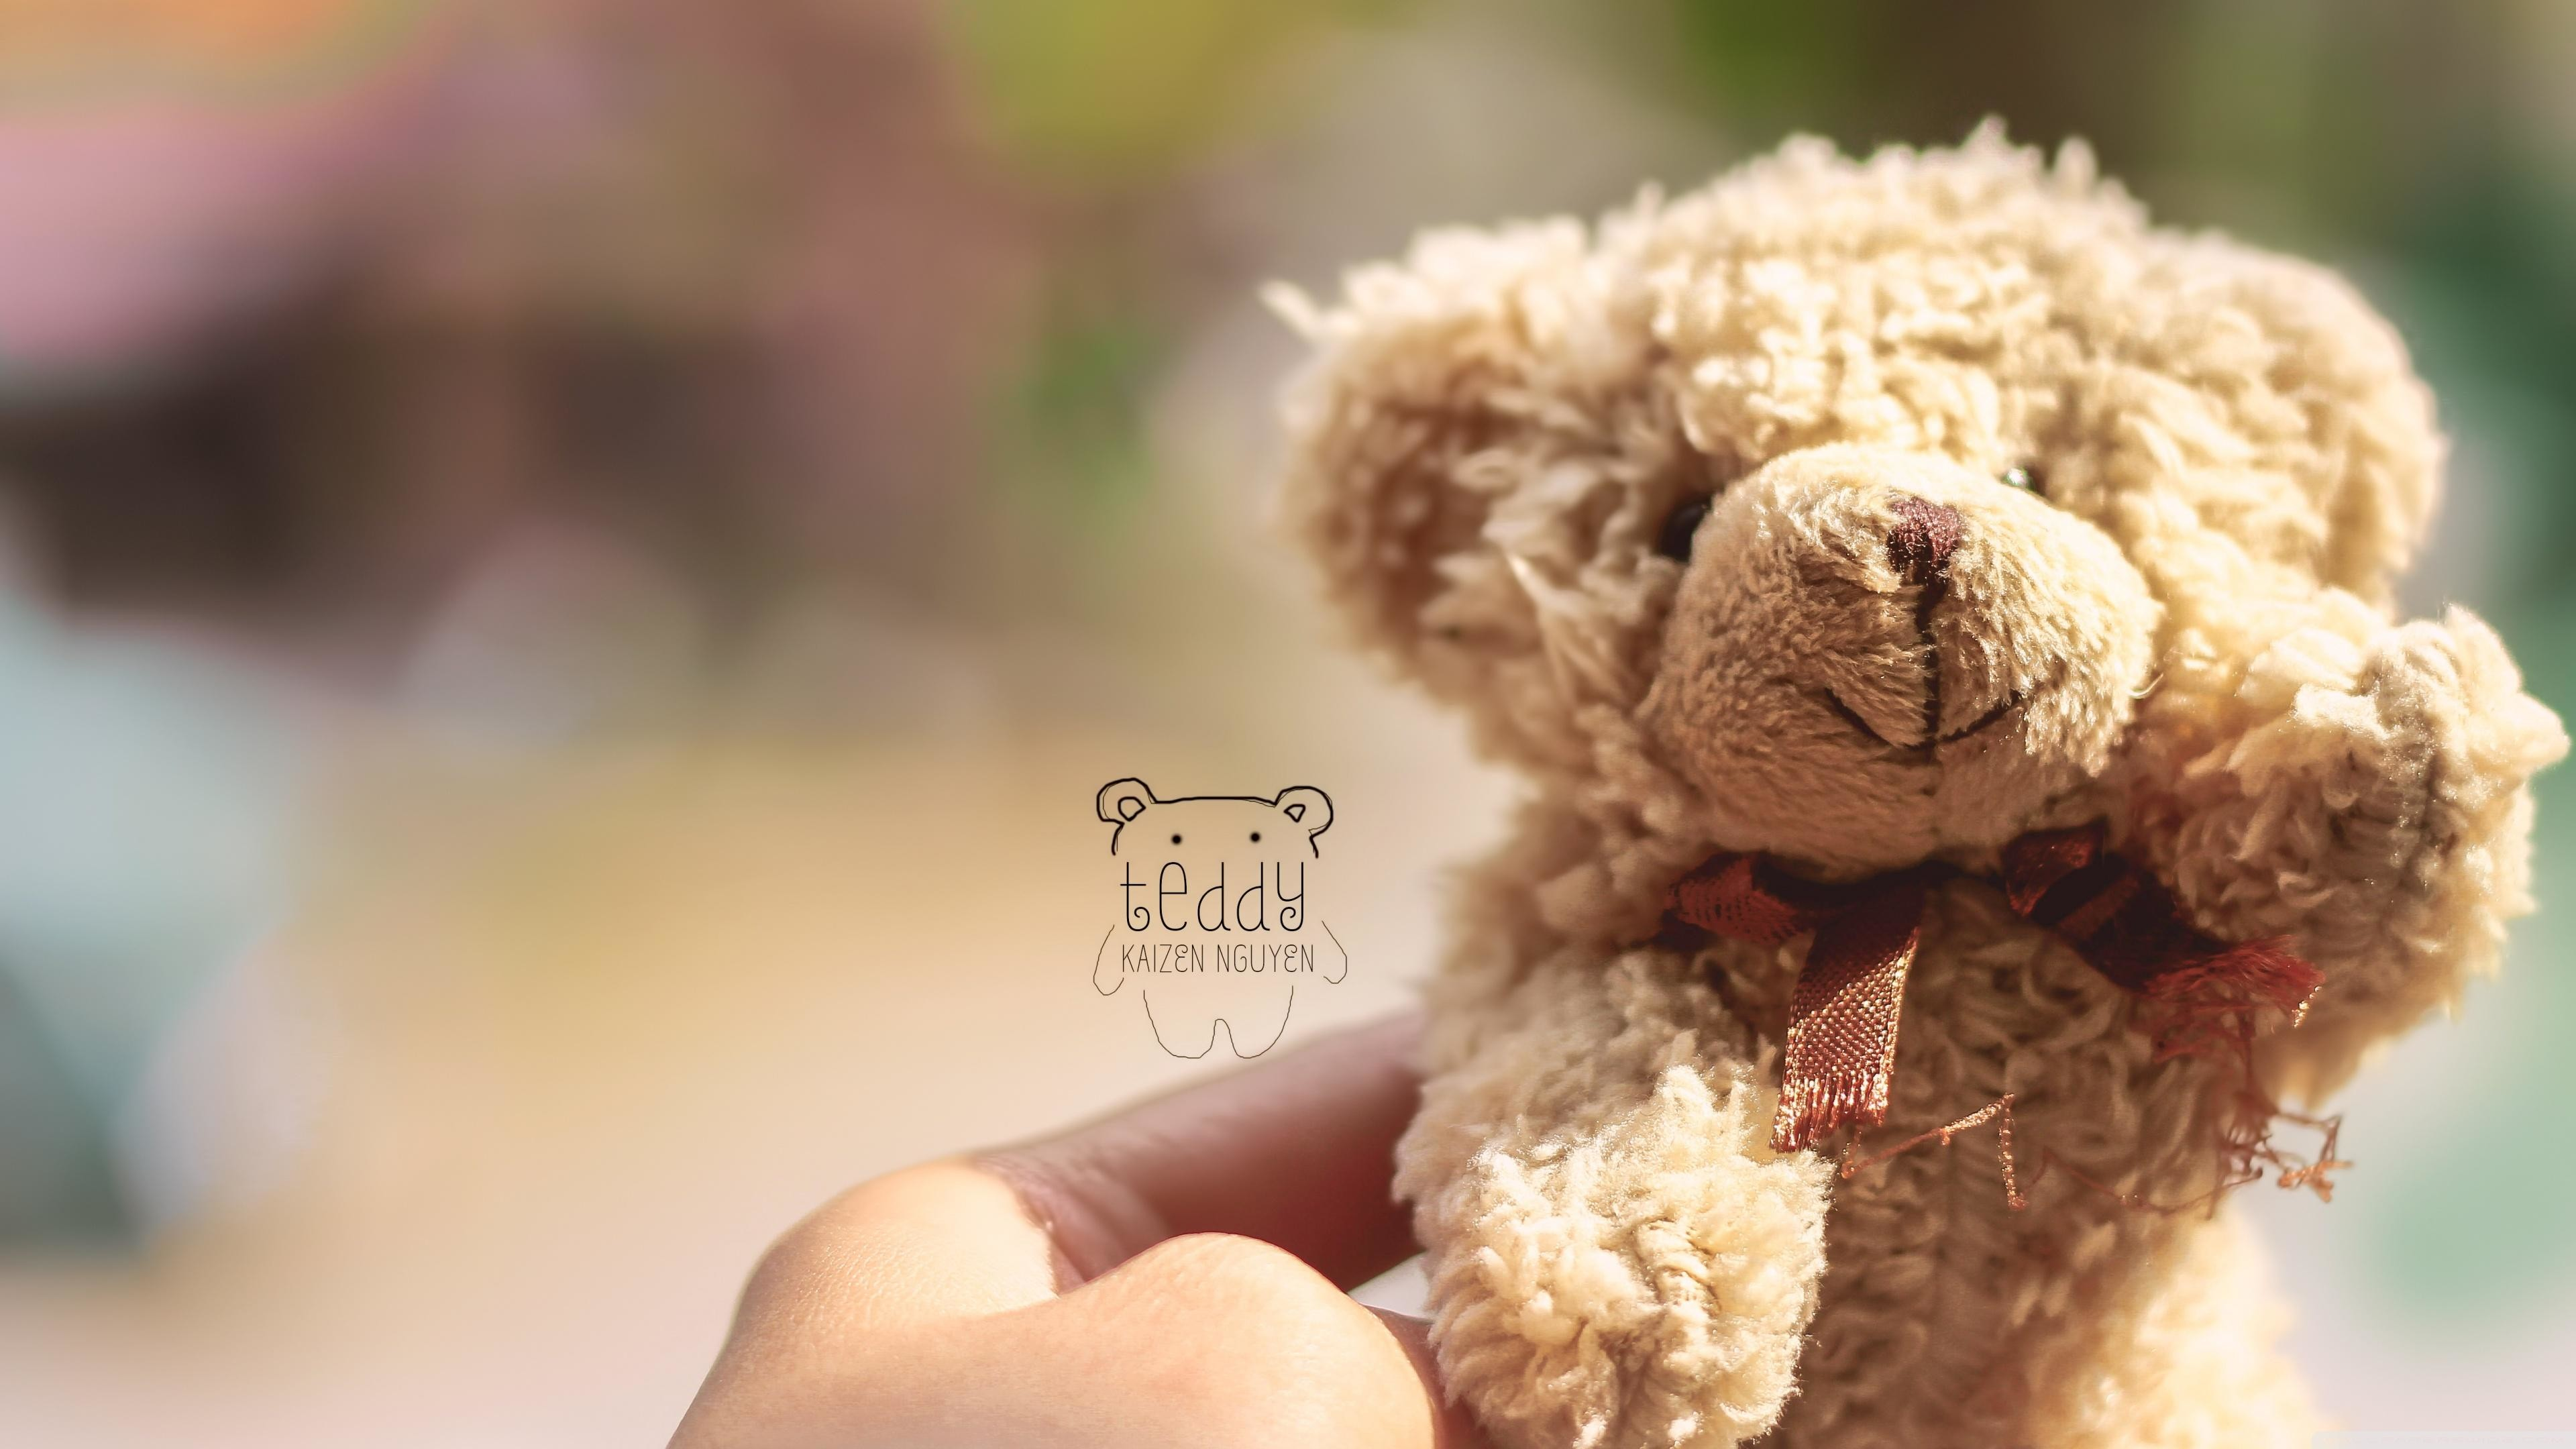 Cute Teddy Bear Wallpapers 59 Background Pictures